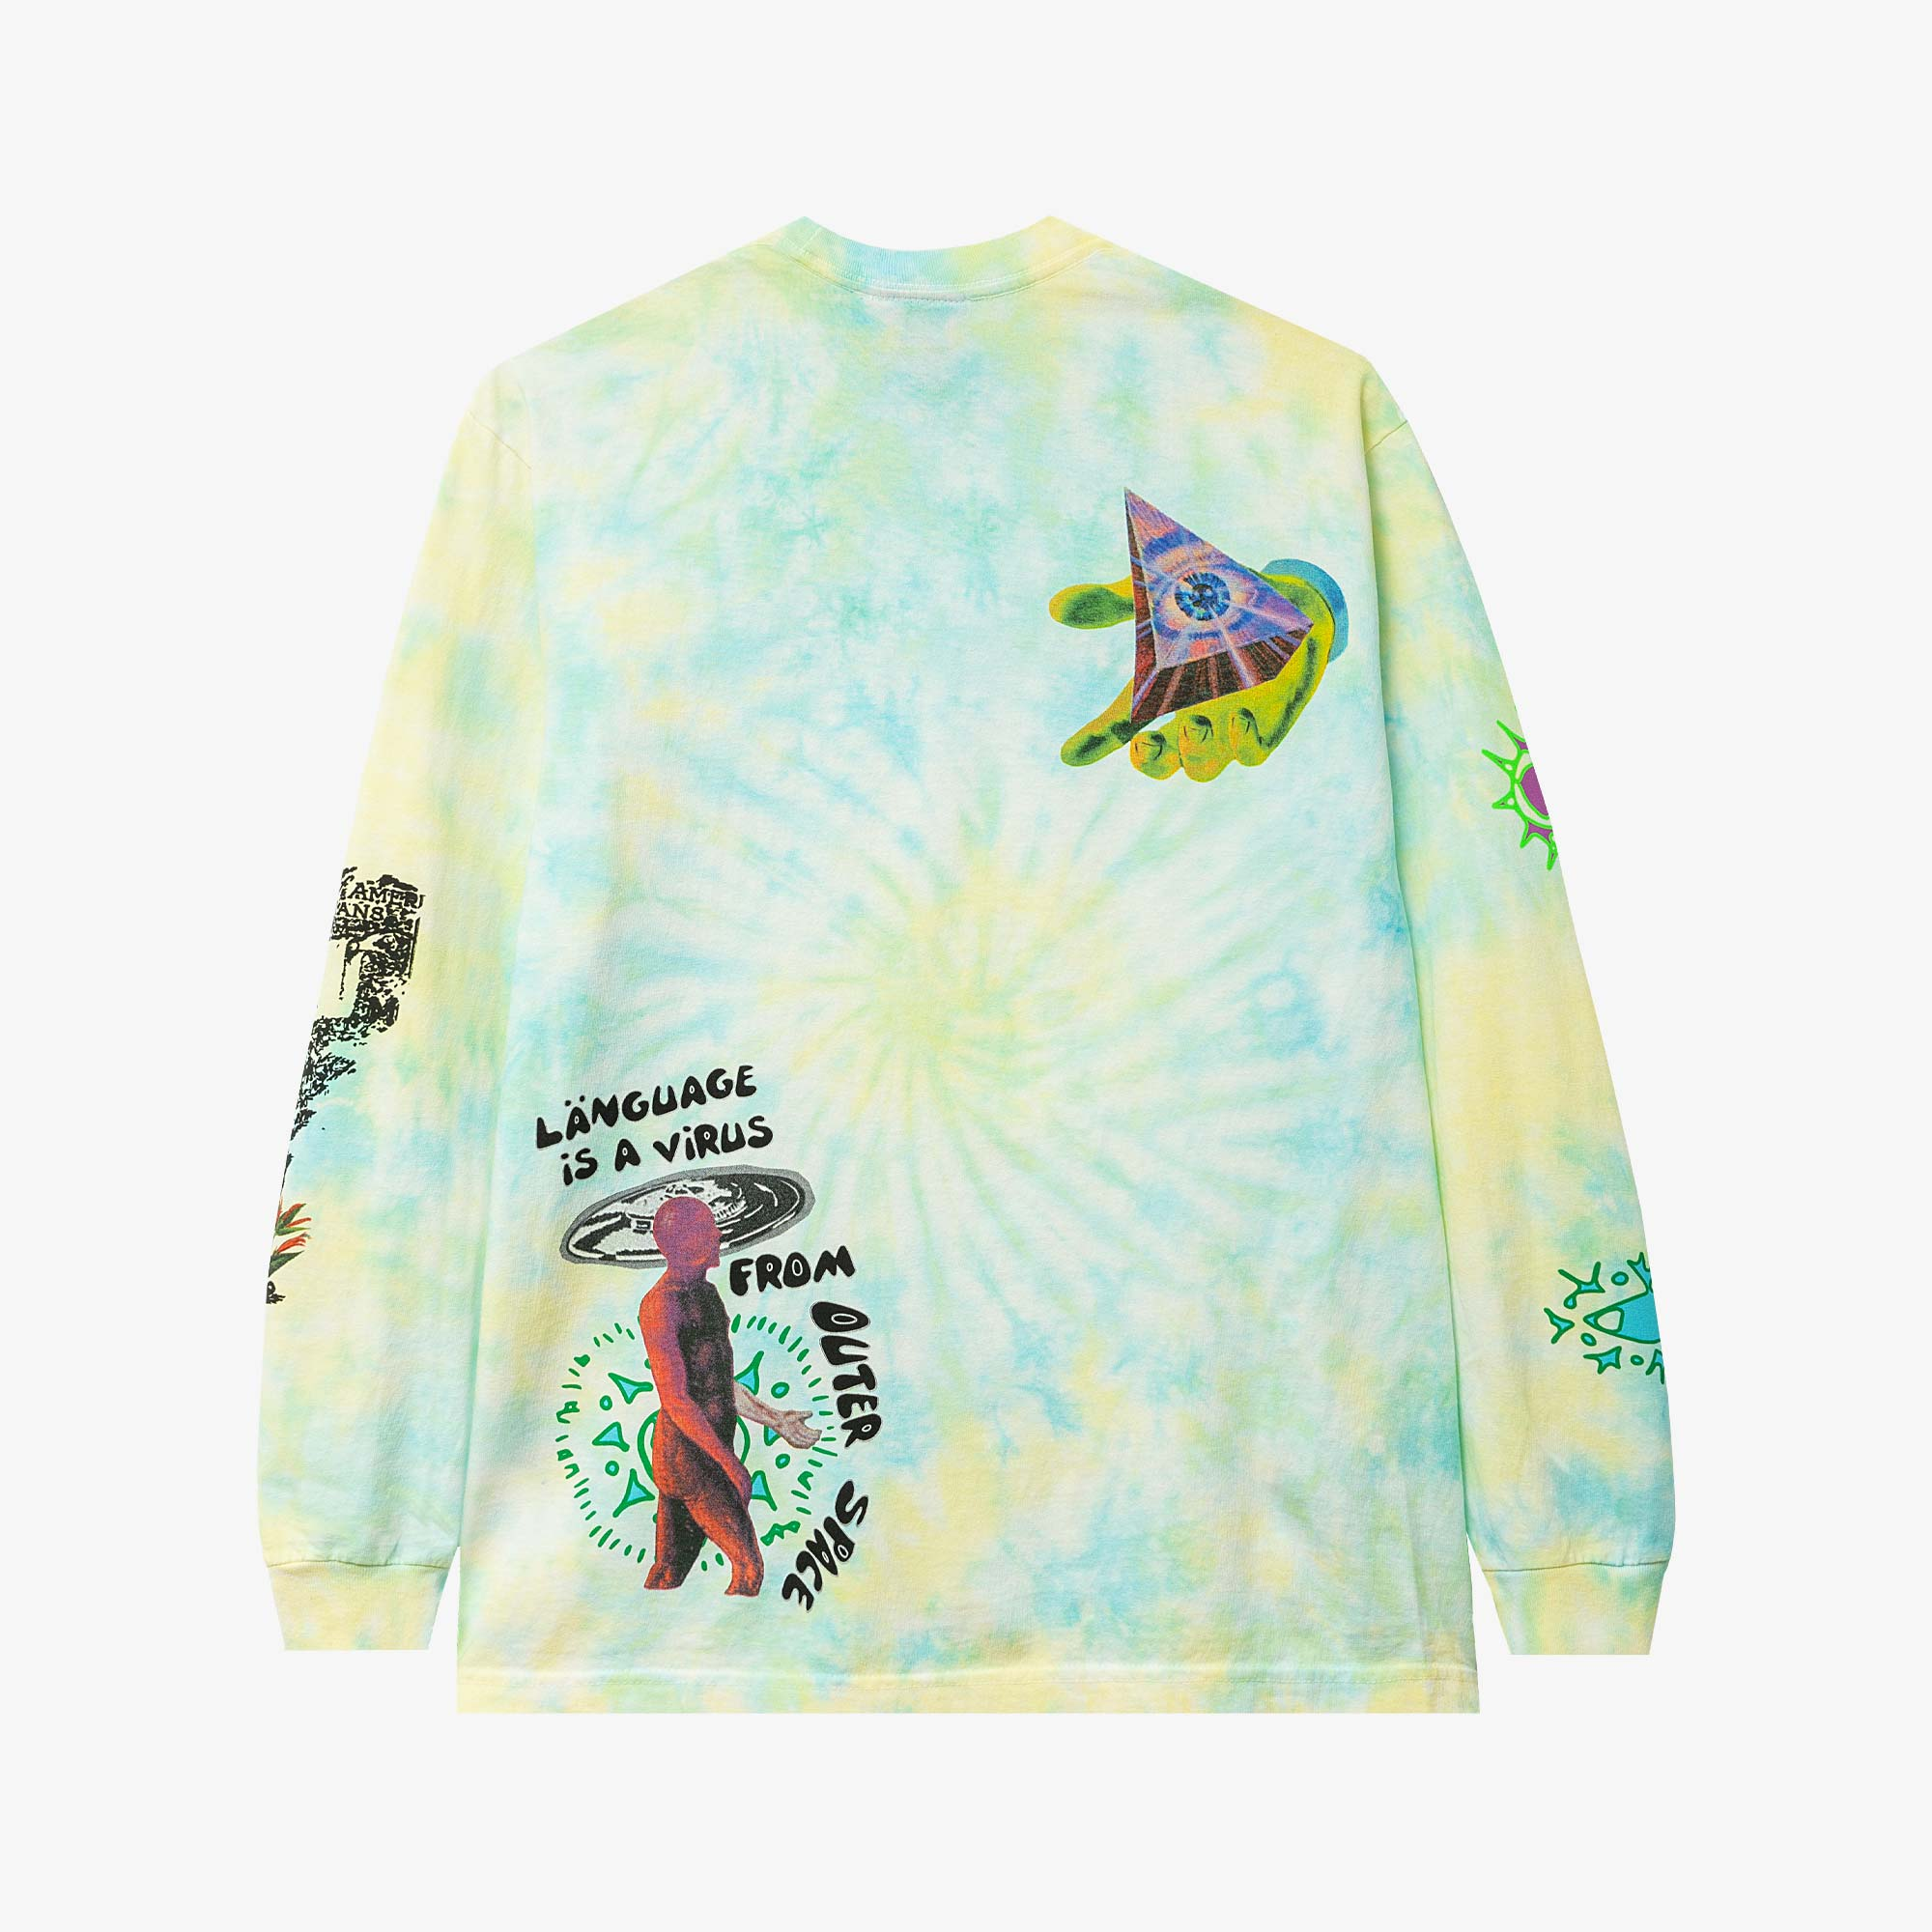 Real Bad Man From Outer Space LS Tee - Aqua / Yellow 2